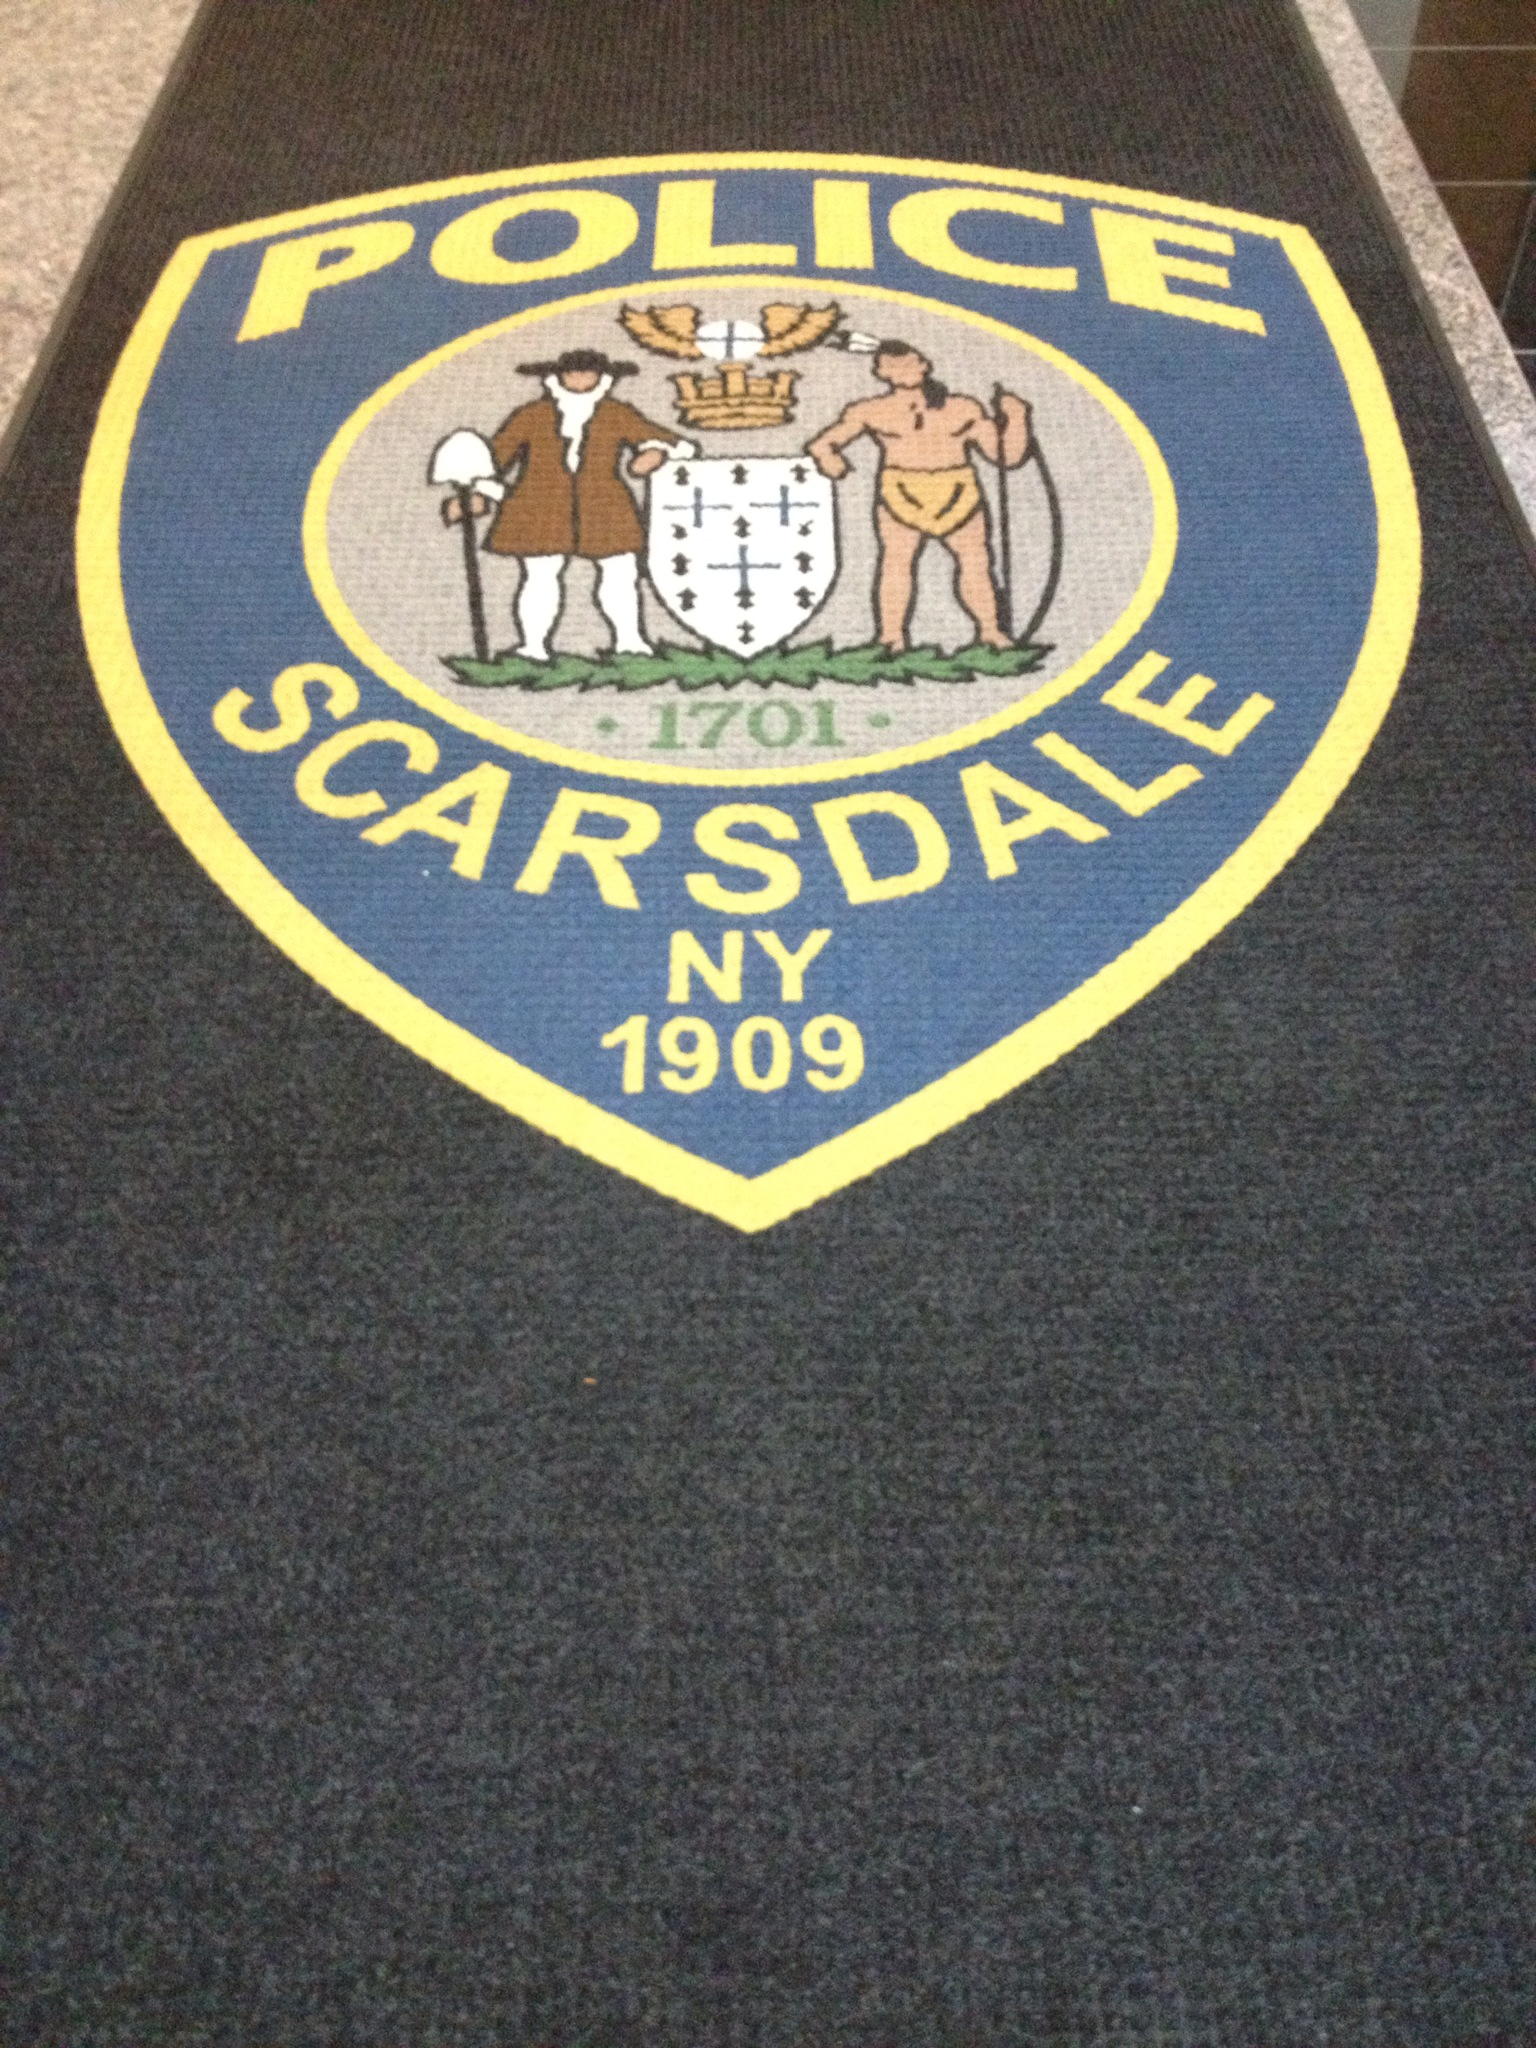 A Scarsdale resident reported his identity stolen last week.